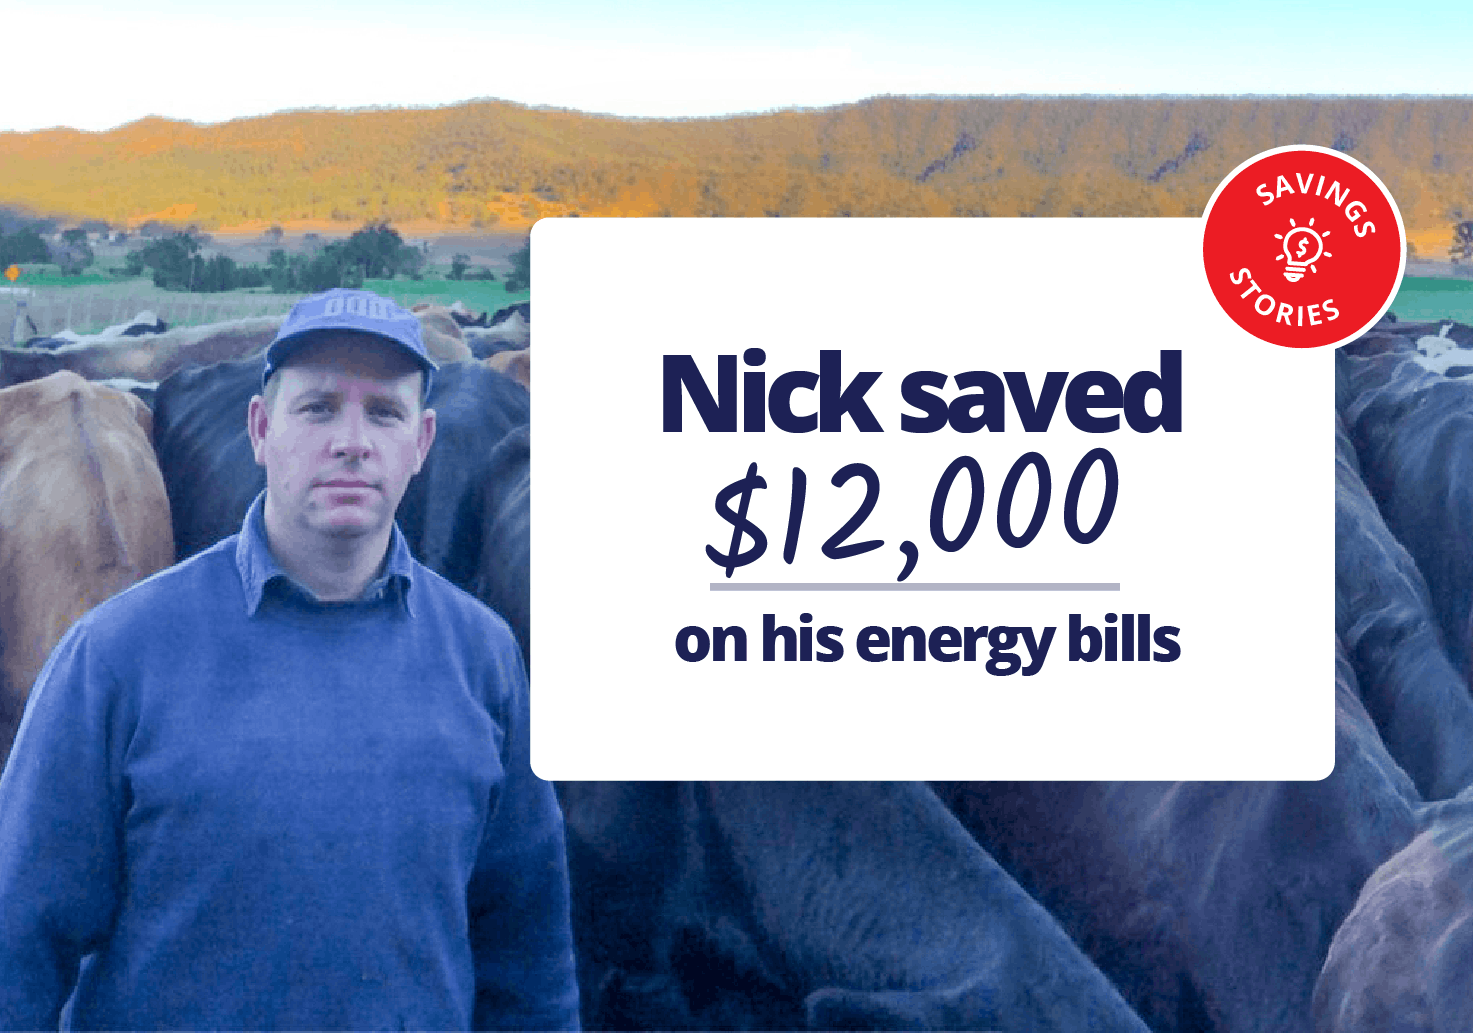 Nick saved $12,000 on his energy bills